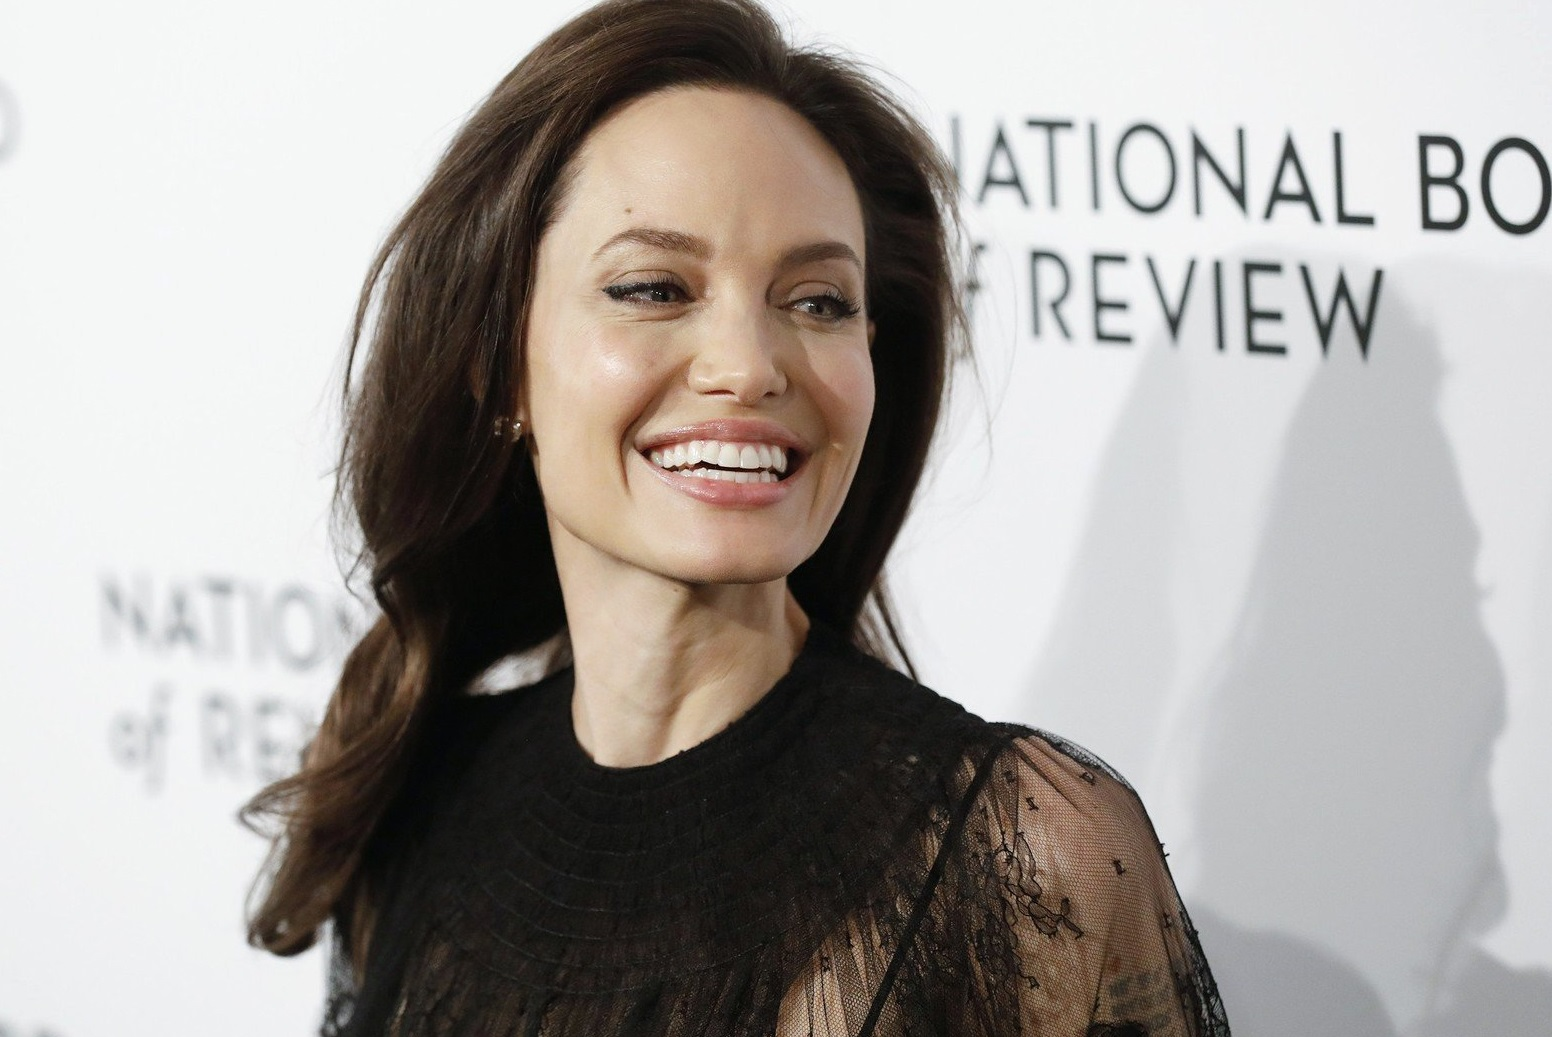 Angelina Jolie arrives on the red carpet at the National Board of Review Annual Awards Gala at Cipriani 42nd Street in New York City on January 9, 2018. The National Board of Review's awards celebrate excellence in filmmaking with categories that include Best Picture, Best Director, Best Actor and Actress, Best Original and Adapted Screenplay, Breakthrough Performance, and Directorial Debut, as well as signature honors such as the Freedom of Expression. Photo by /UPI, Image: 359724011, License: Rights-managed, Restrictions: , Model Release: no, Credit line: Profimedia, UPI